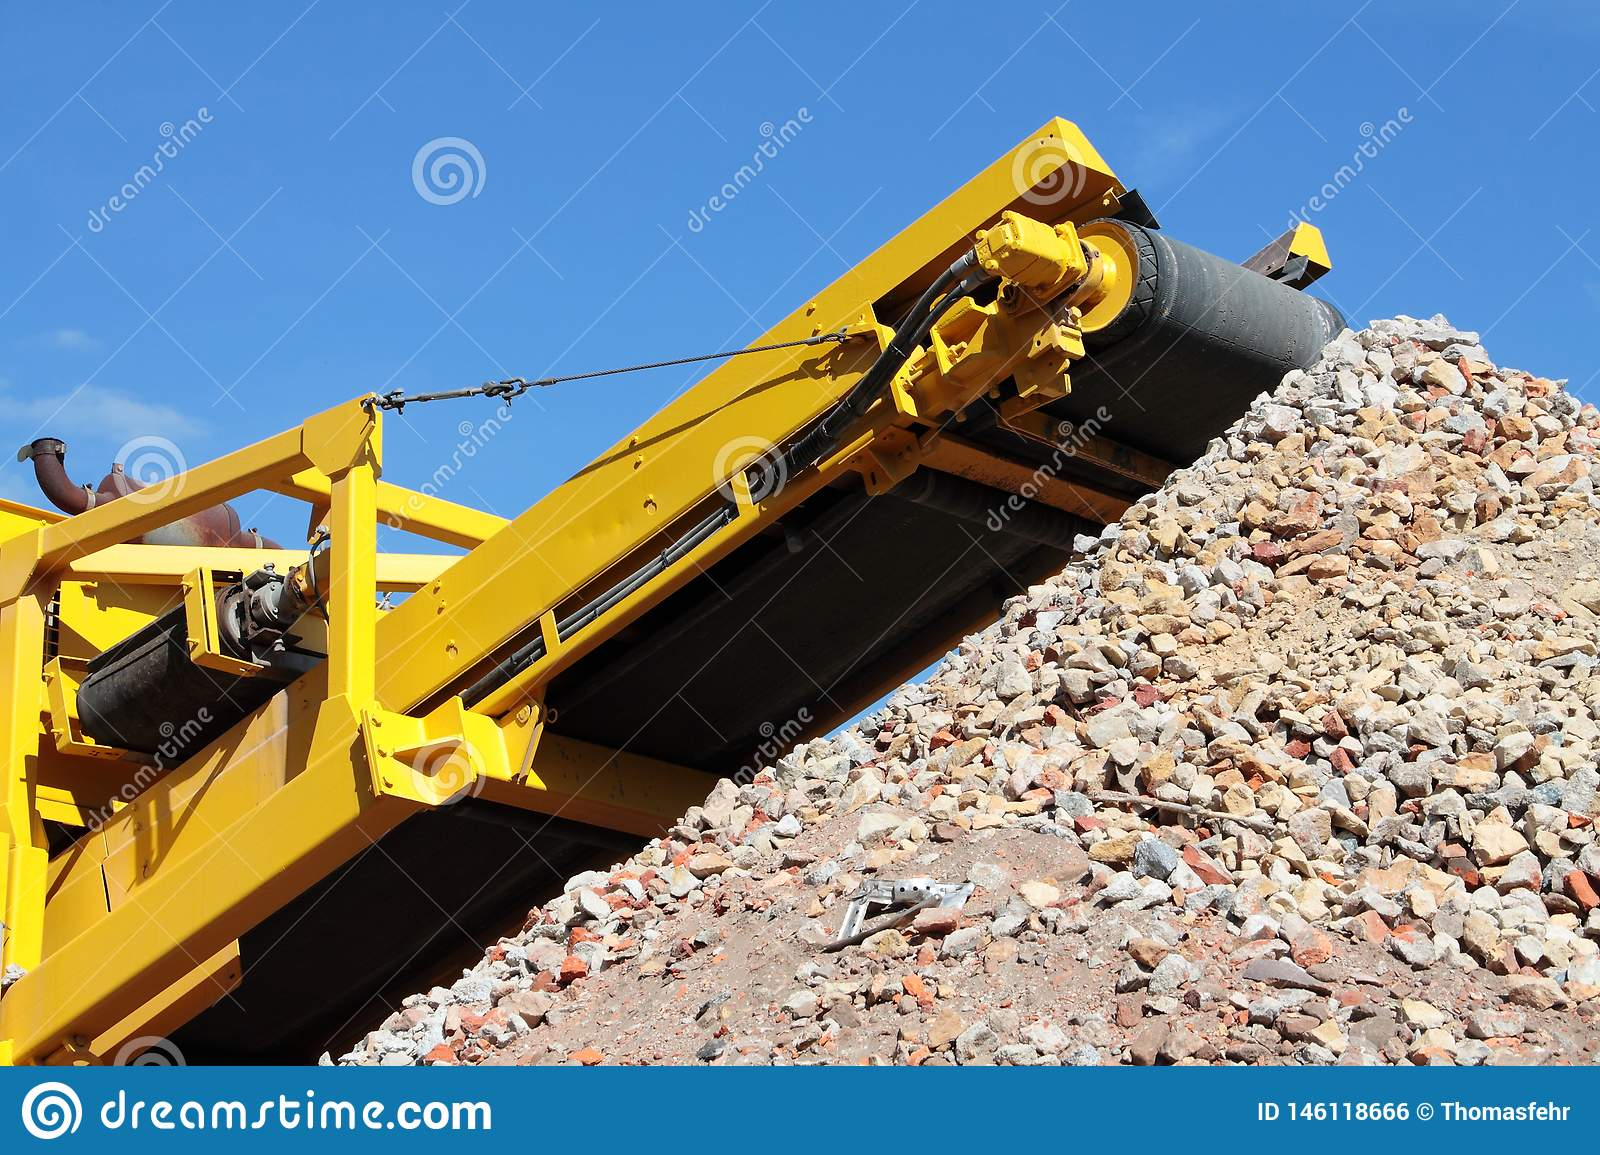 Earth moving machine in action